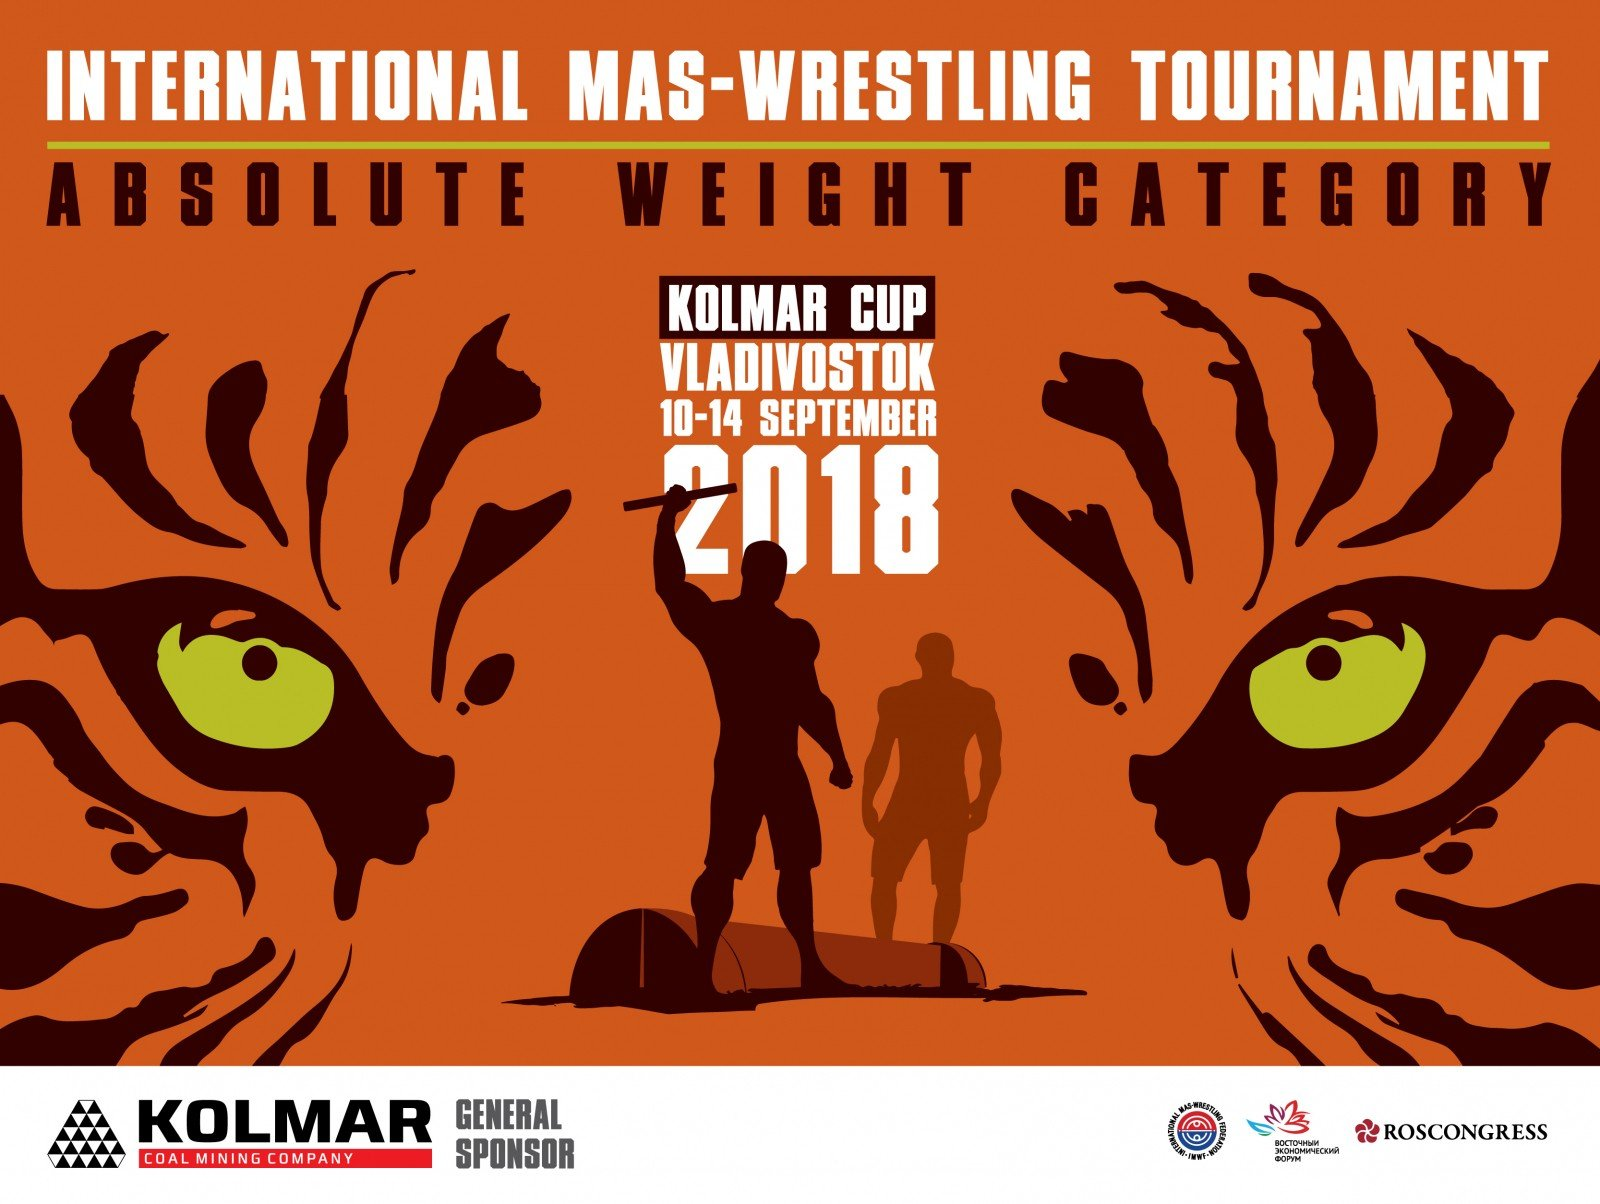 Kolmar Cup International Mas-Wrestling Tournament - 2018